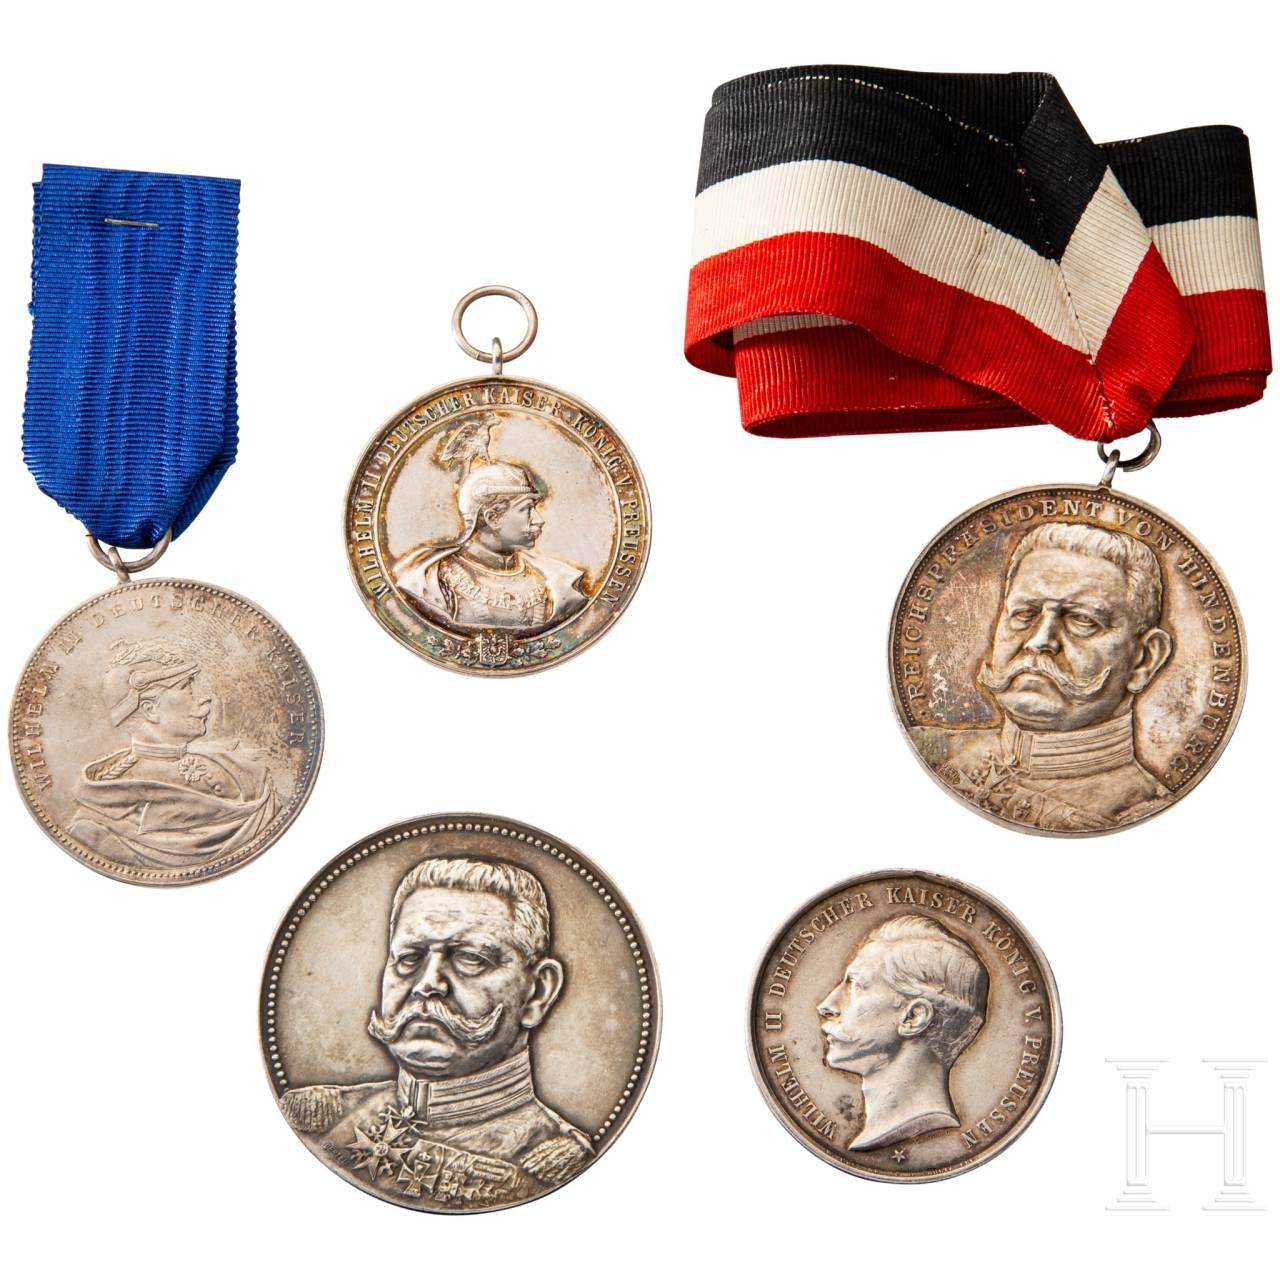 Five shooting prize medals